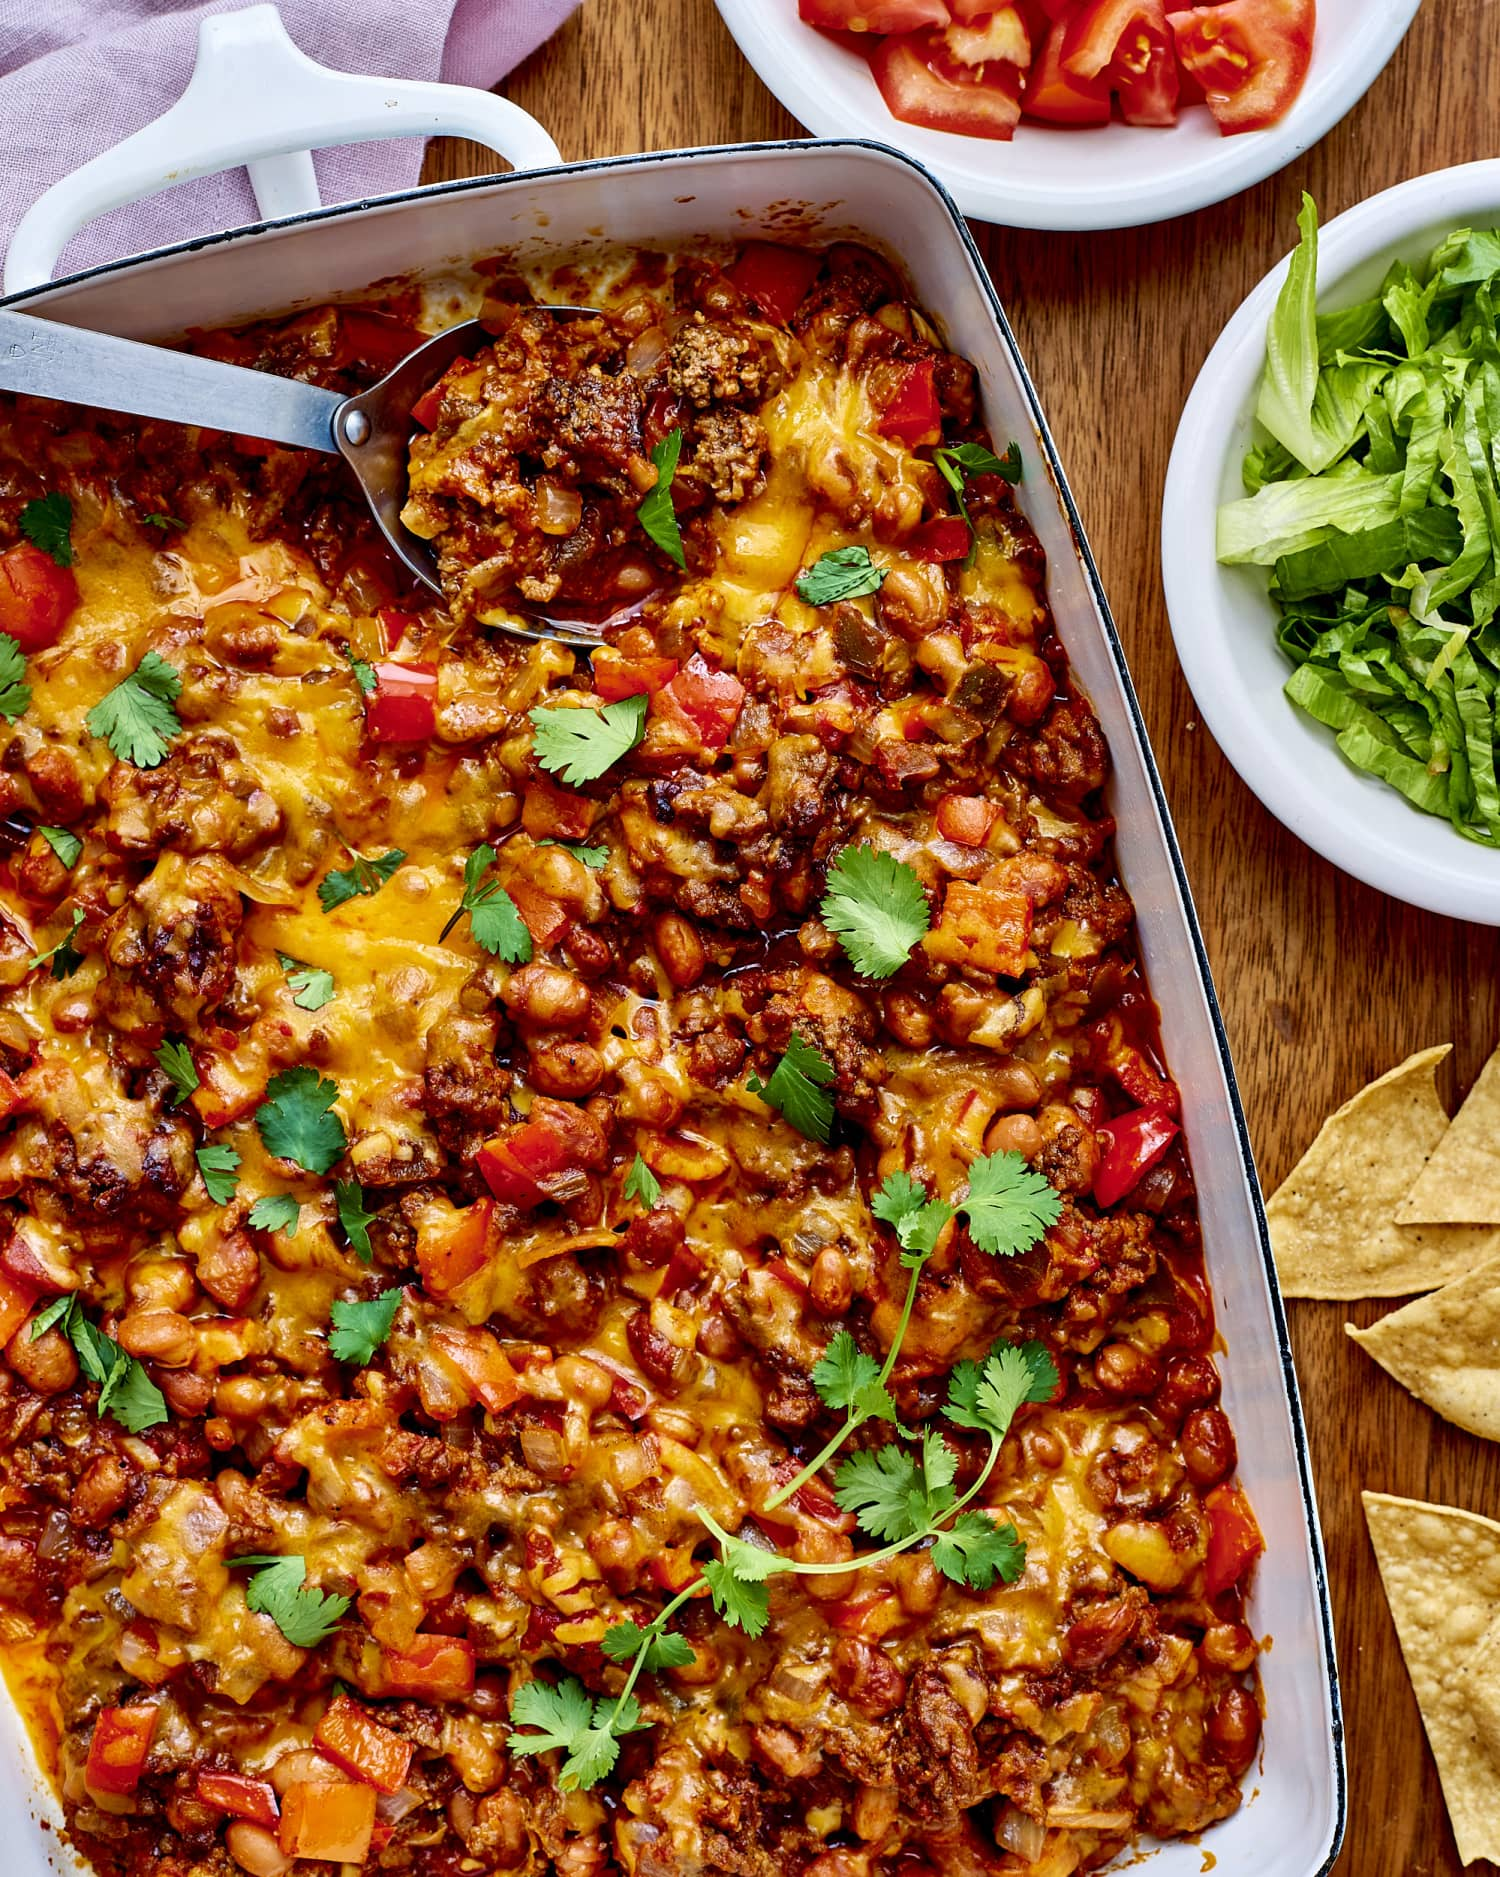 The Top 10 Casseroles of 2017